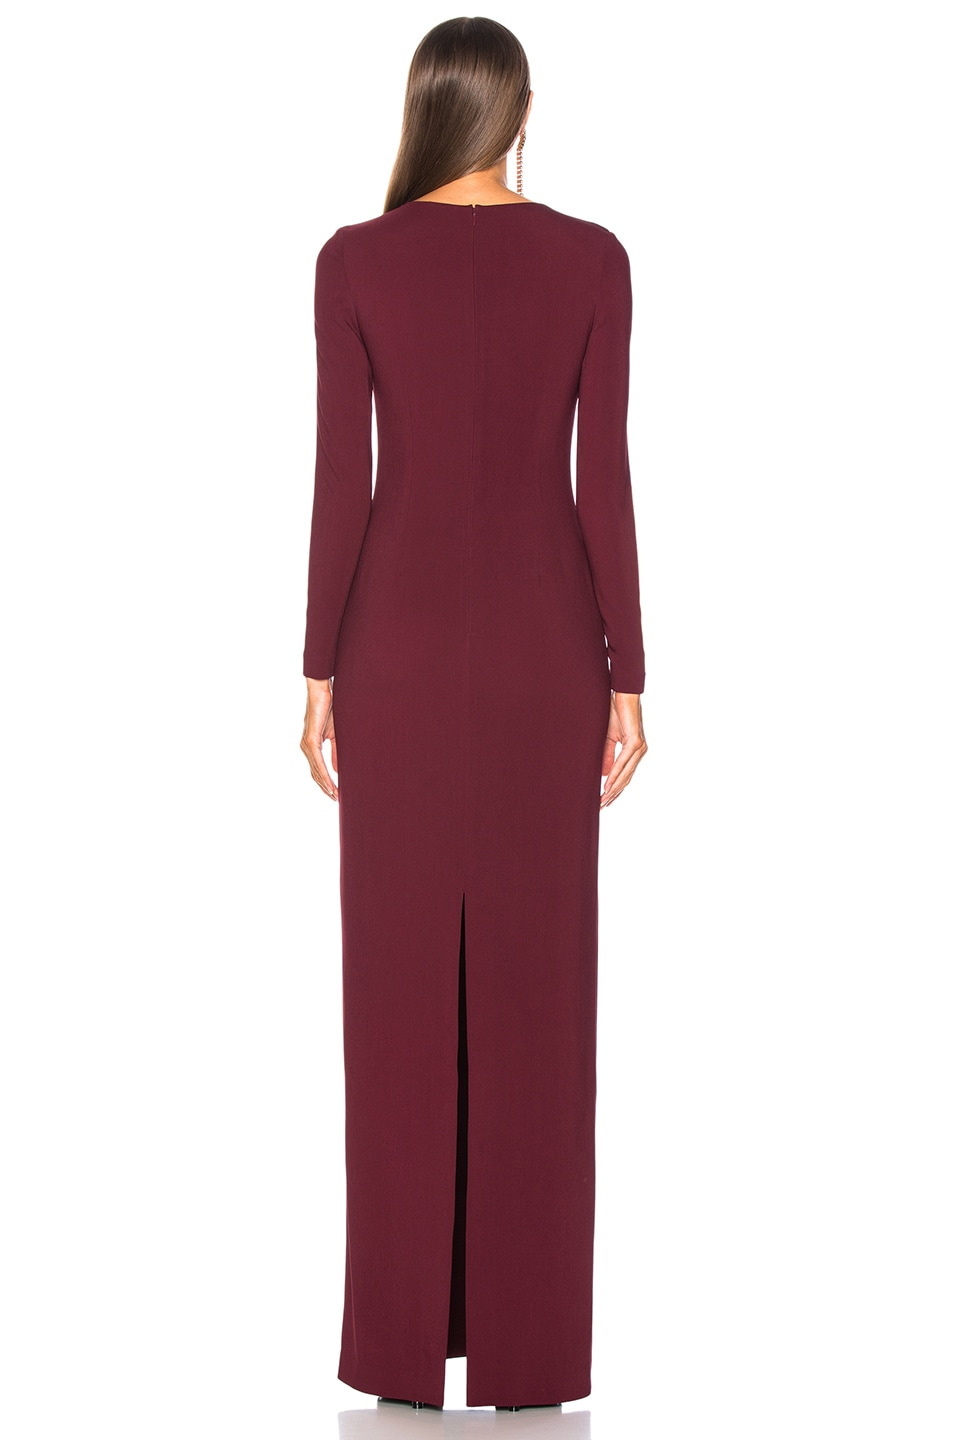 Image 3 of Stella McCartney Lace Up Maxi Dress in Bordeaux